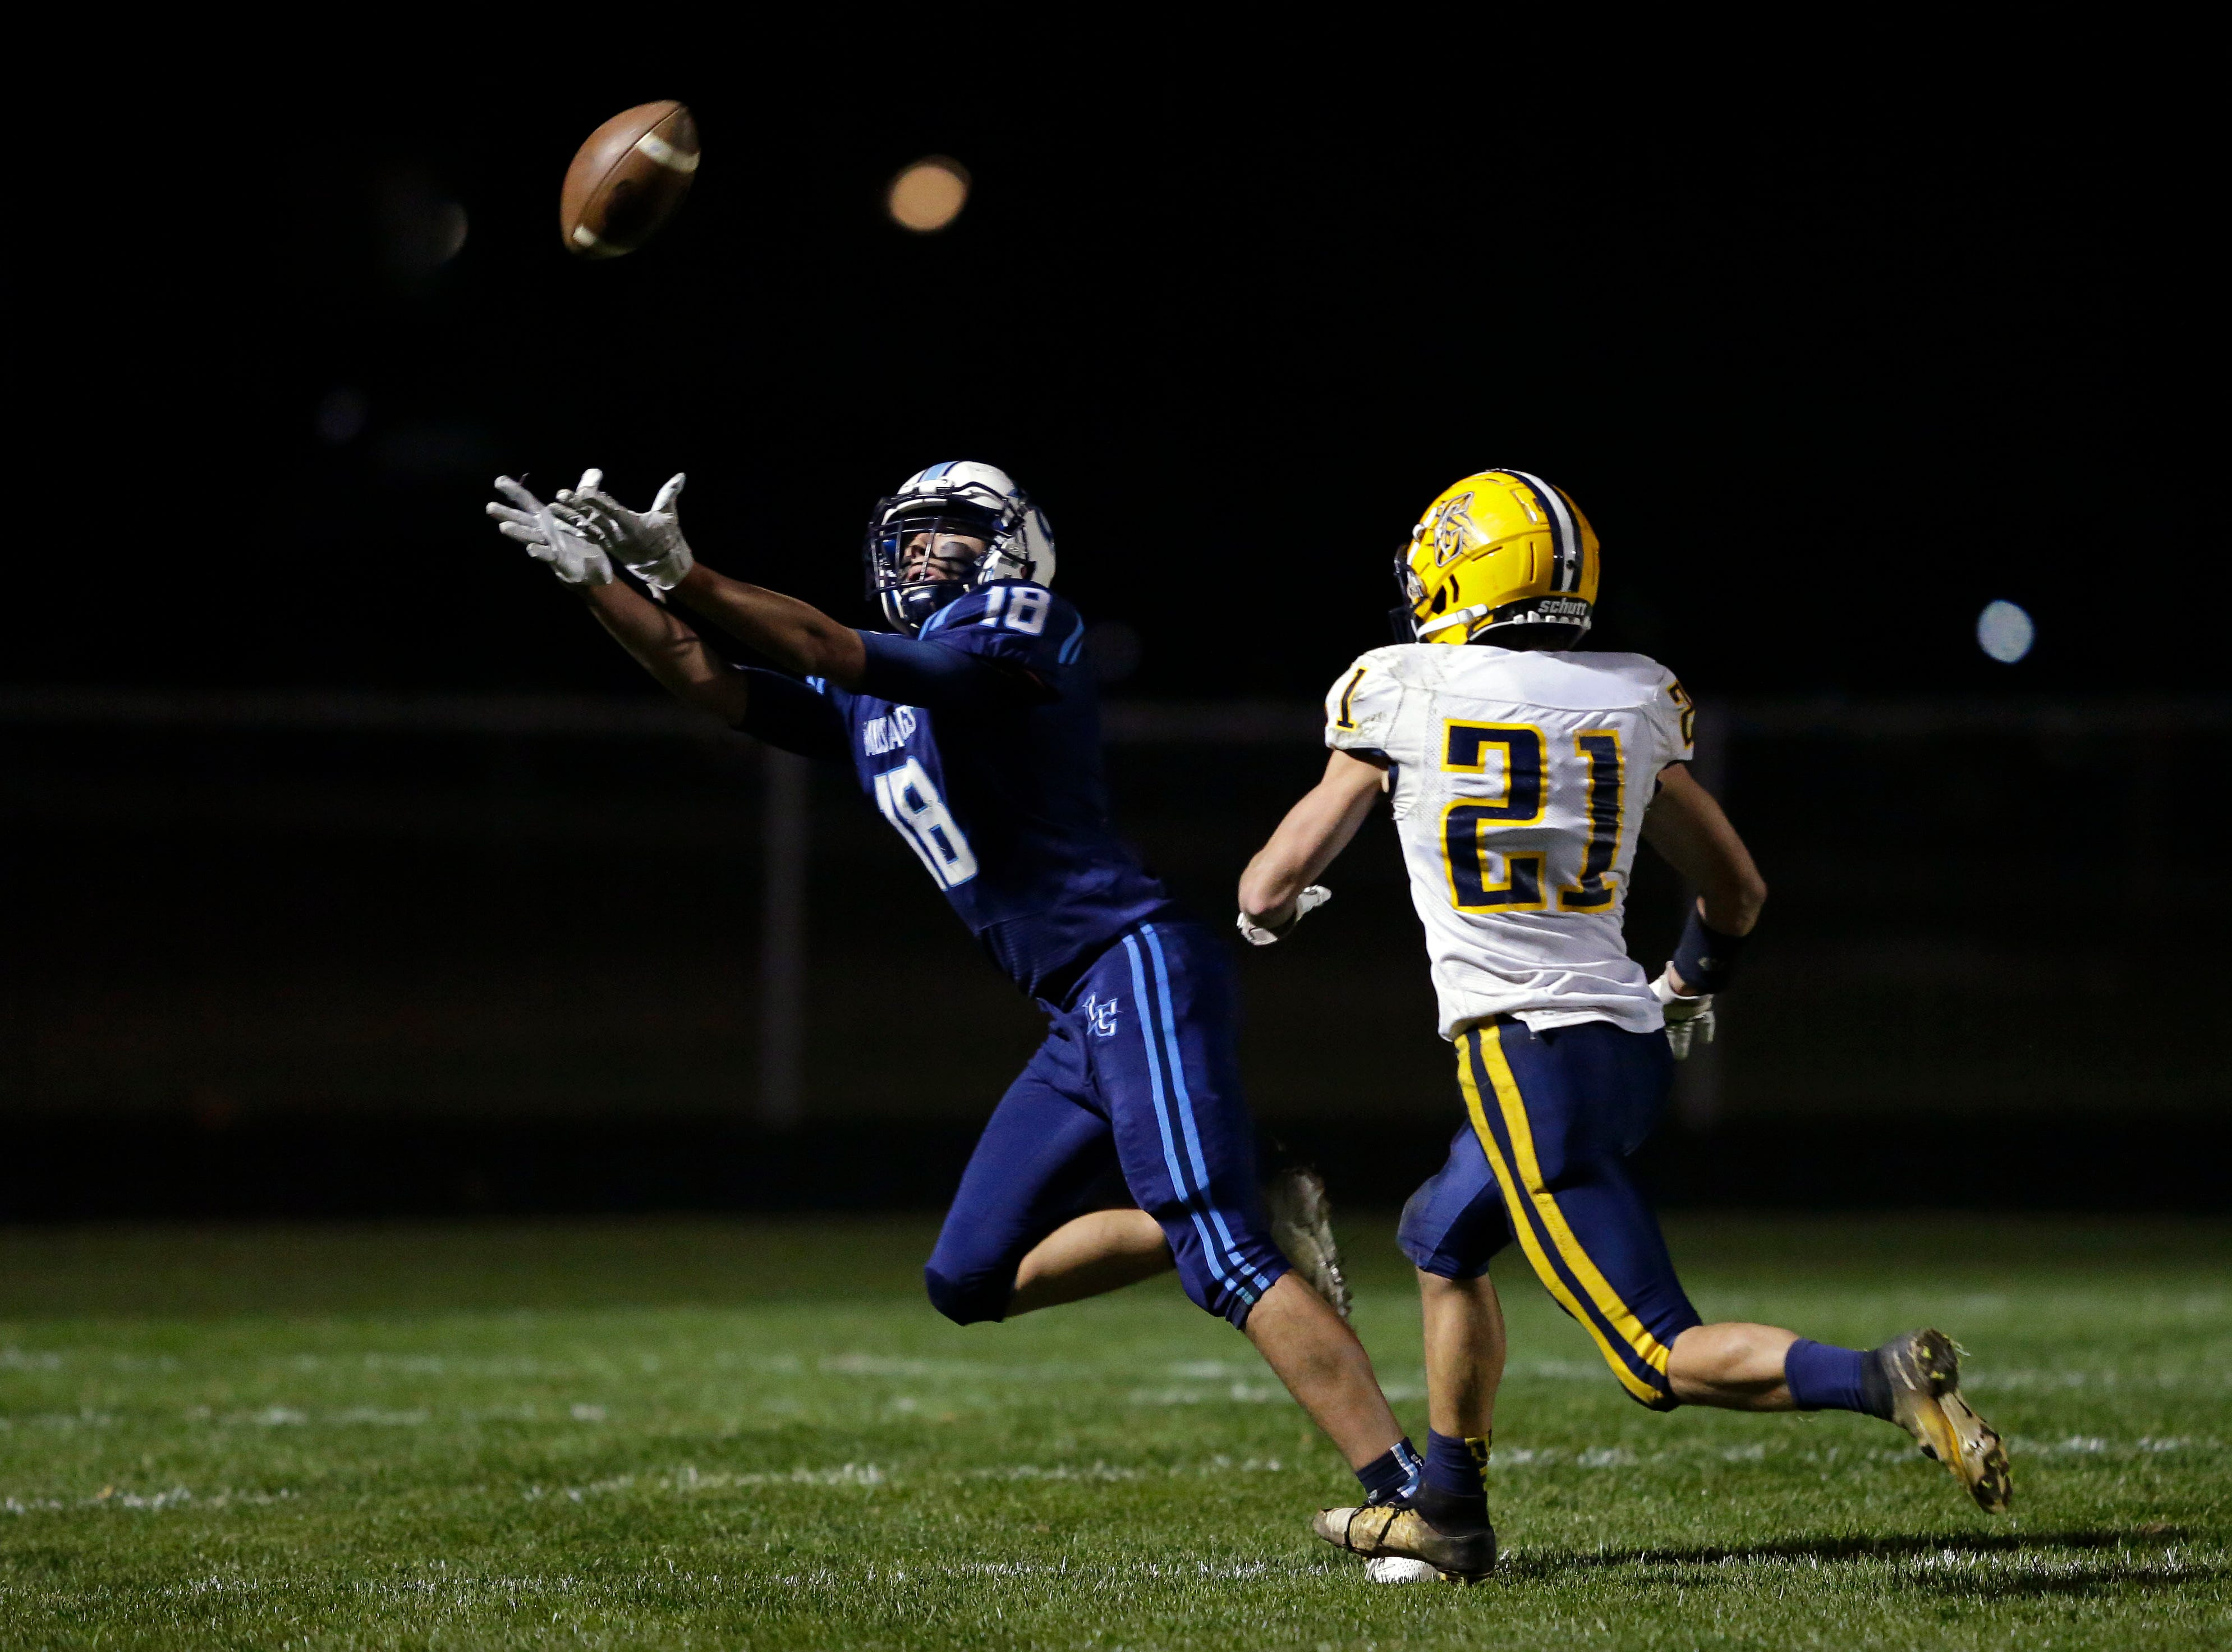 David Peeters of Little Chute tries for an interception against Chilton in a WIAA Division 4 second round football playoff game Friday, October 26, 2018, at Little Chute High School in Little Chute, Wis.Ron Page/USA TODAY NETWORK-Wisconsin